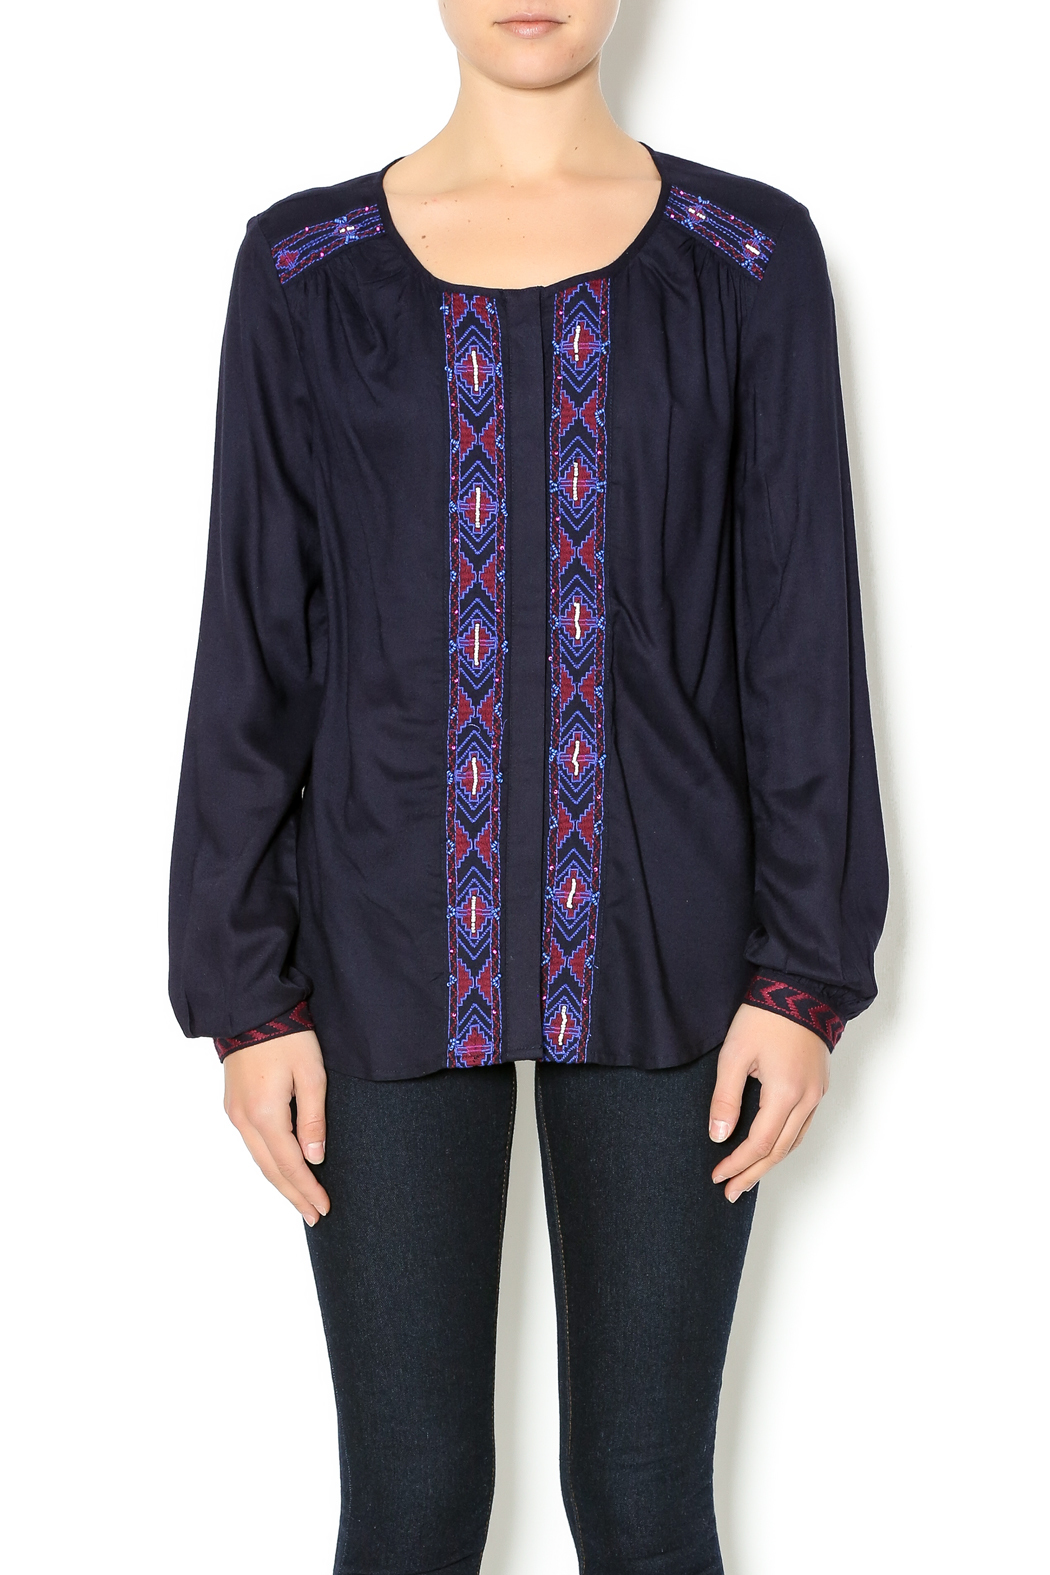 Olive & Oak Navy Embroidered Blouse - Main Image